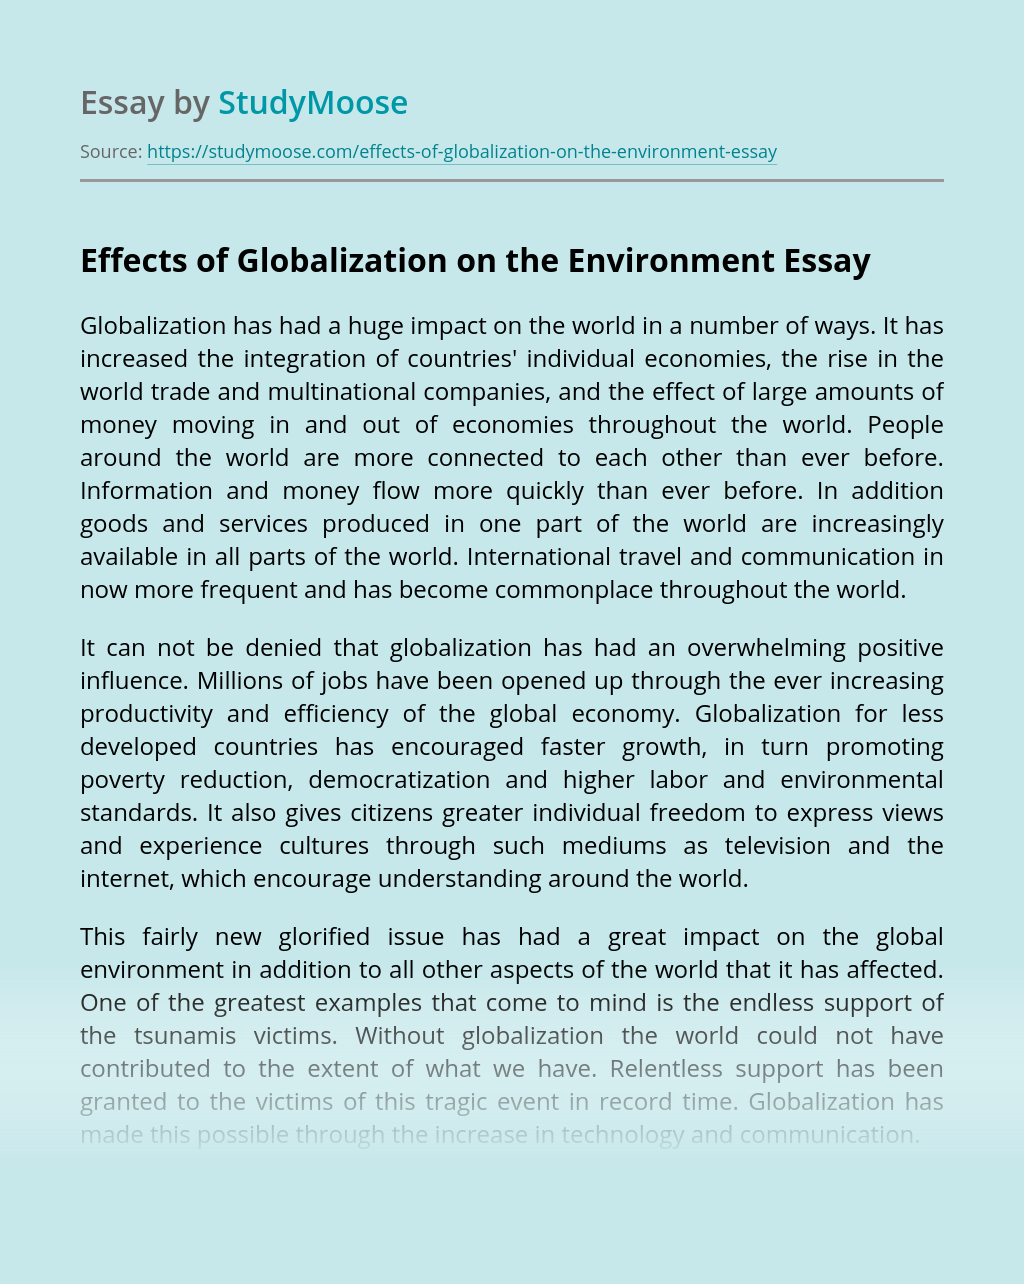 Effects of Globalization on the Environment